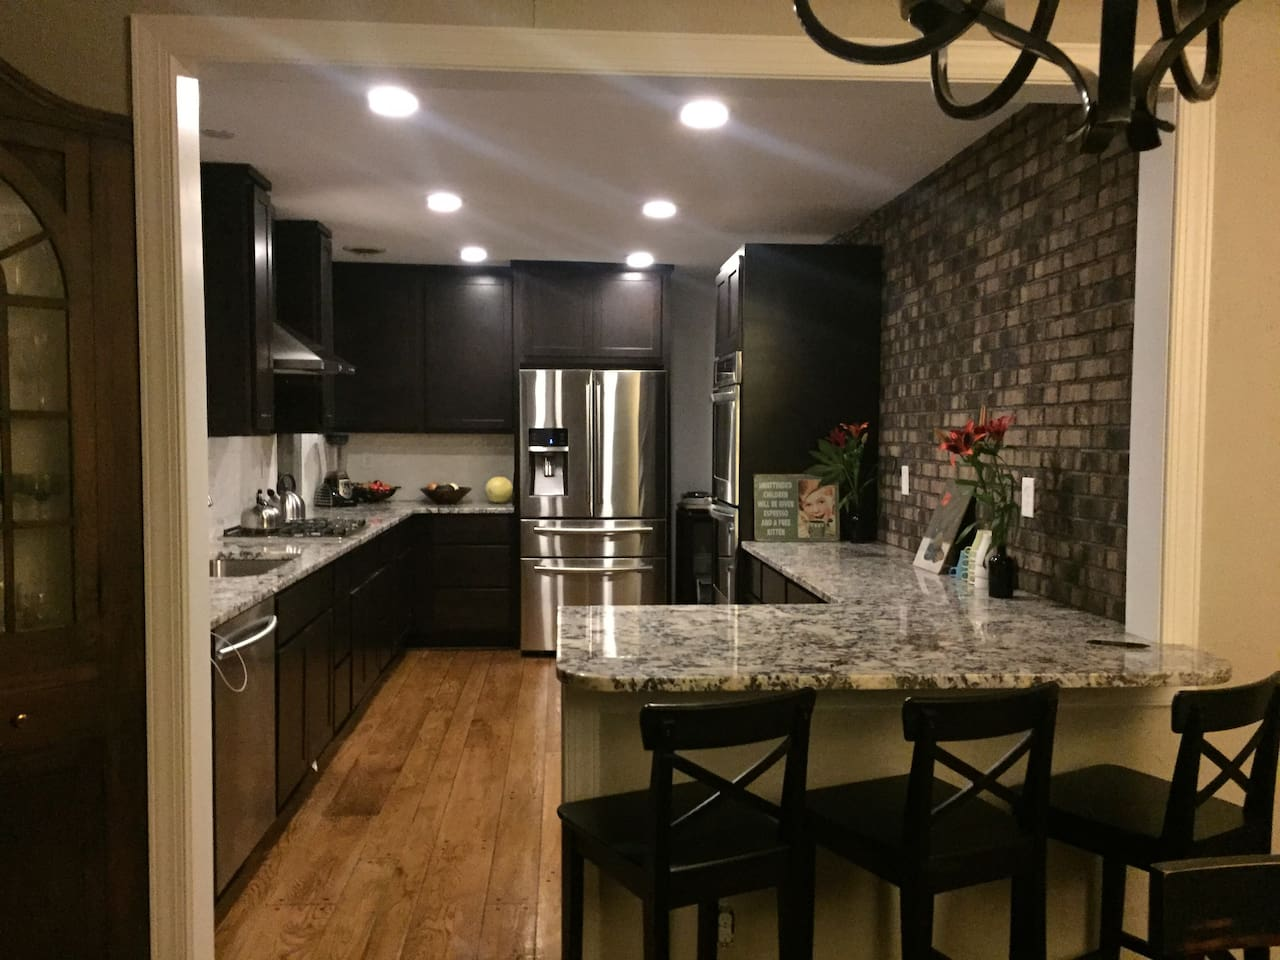 Main level kitchen. 5 burner cooktop and double ovens. Breakfast bar seating.